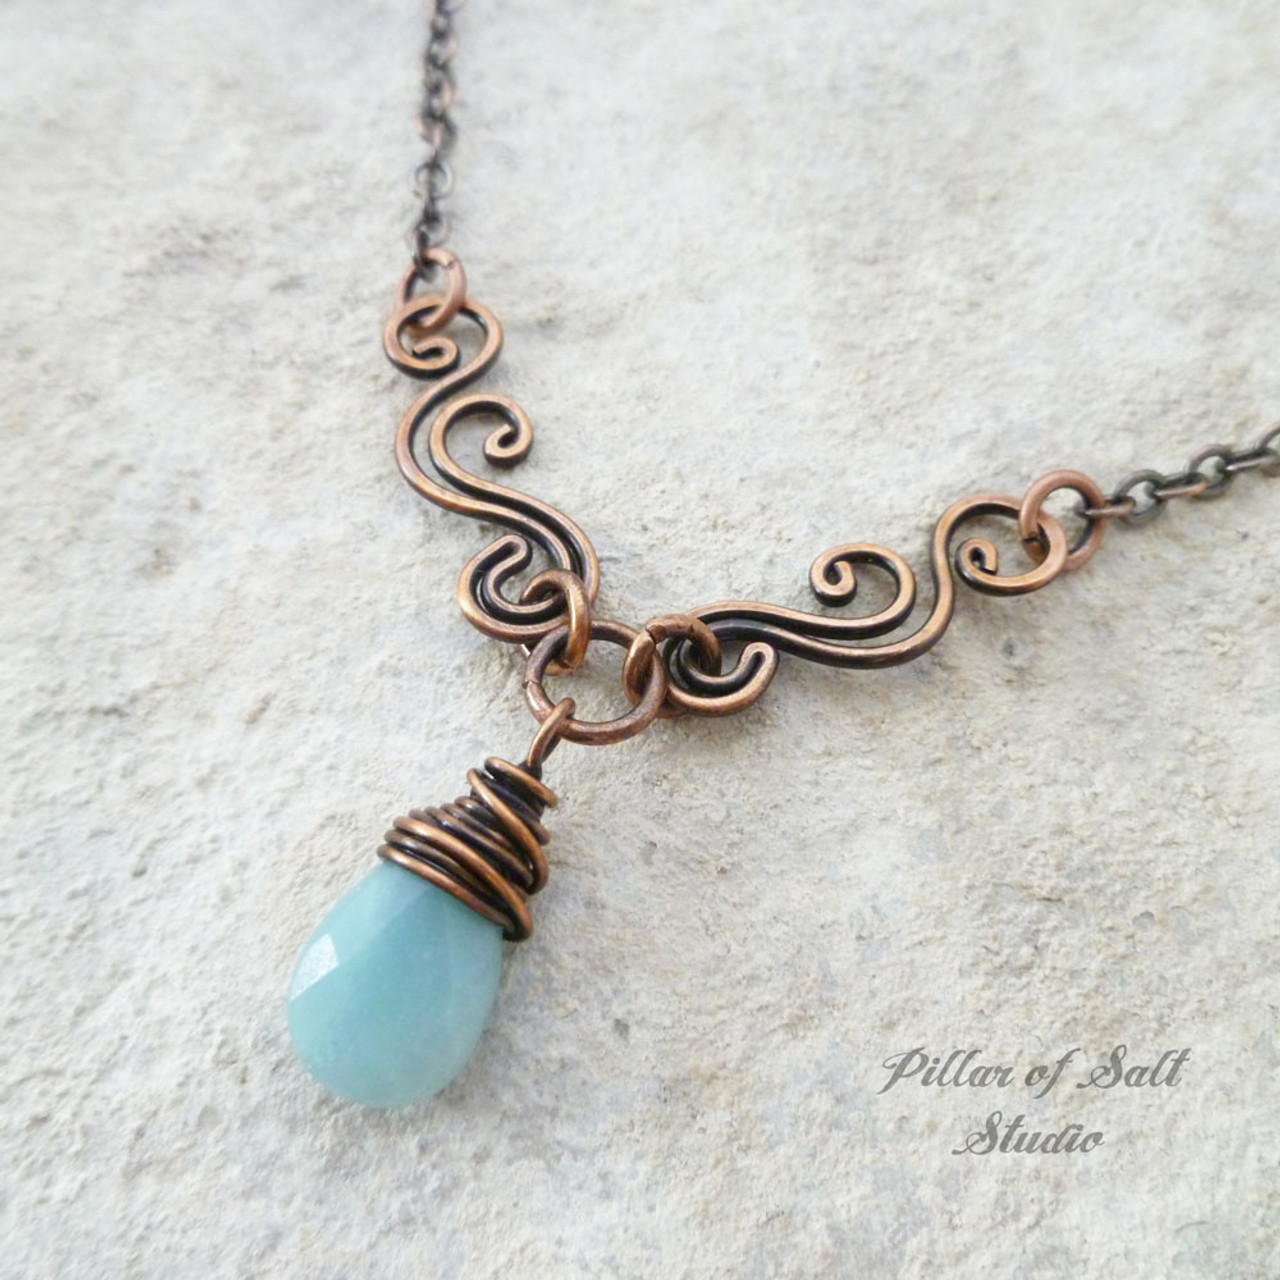 Charming Copper Wire Wrapped Jewelry Ideas - Electrical and Wiring ...